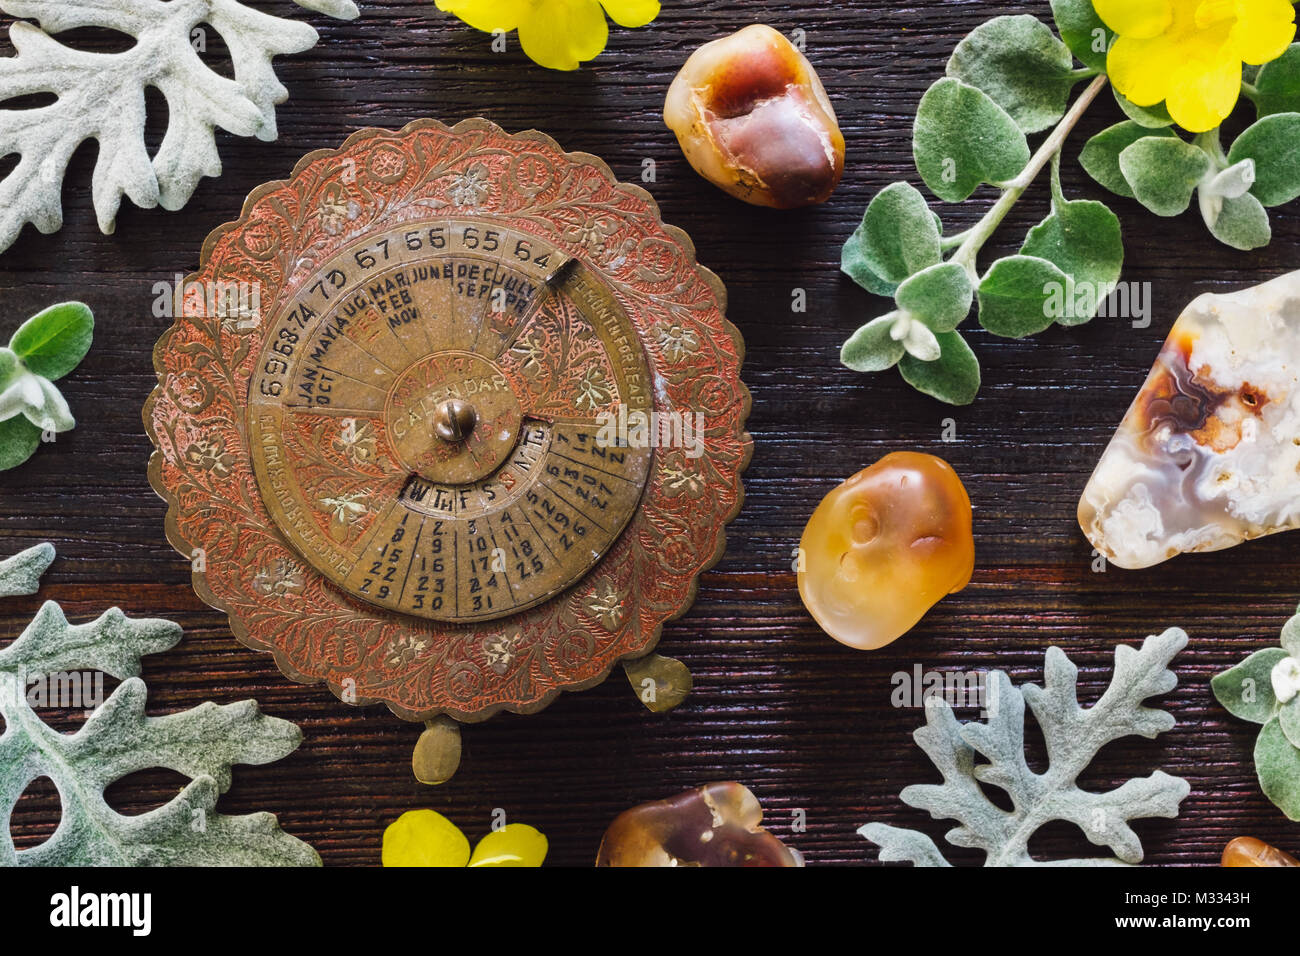 Brass Antique Calendar on Dark Table with Dusty Miller, Yellow Flowers and Fire Agate - Stock Image